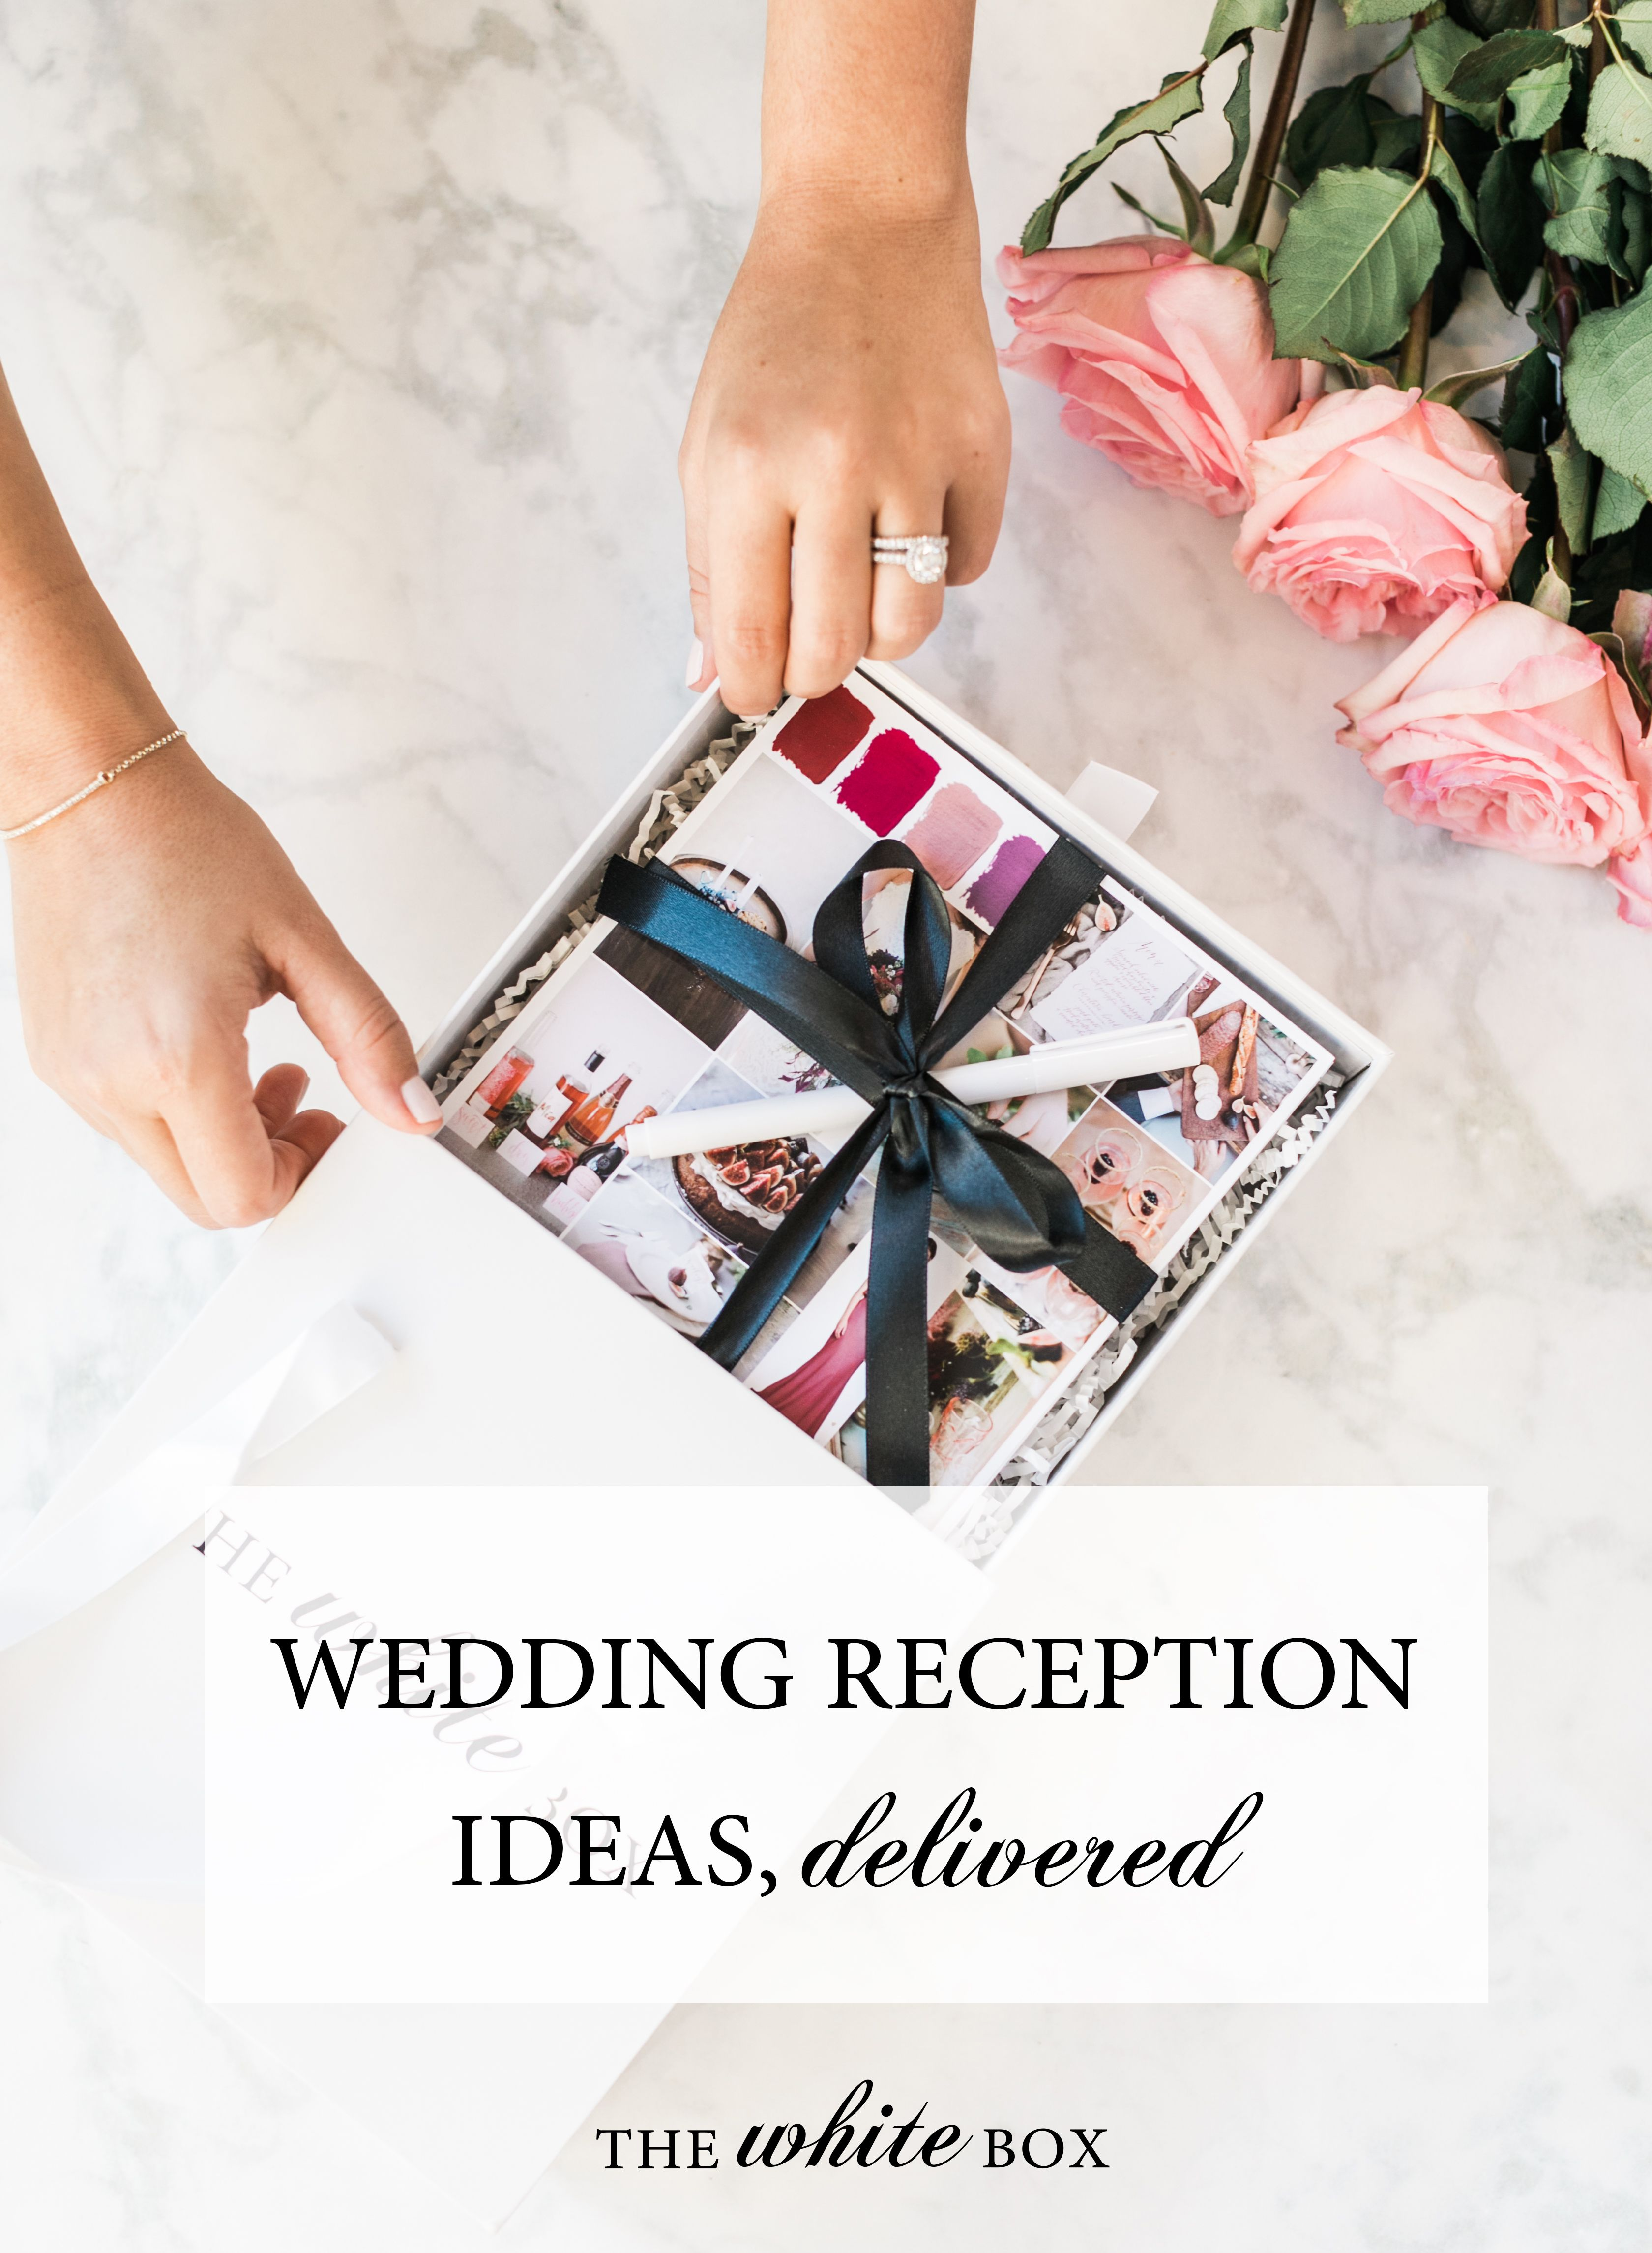 Wedding reception ideas in a box delivered right to your doorstep ...